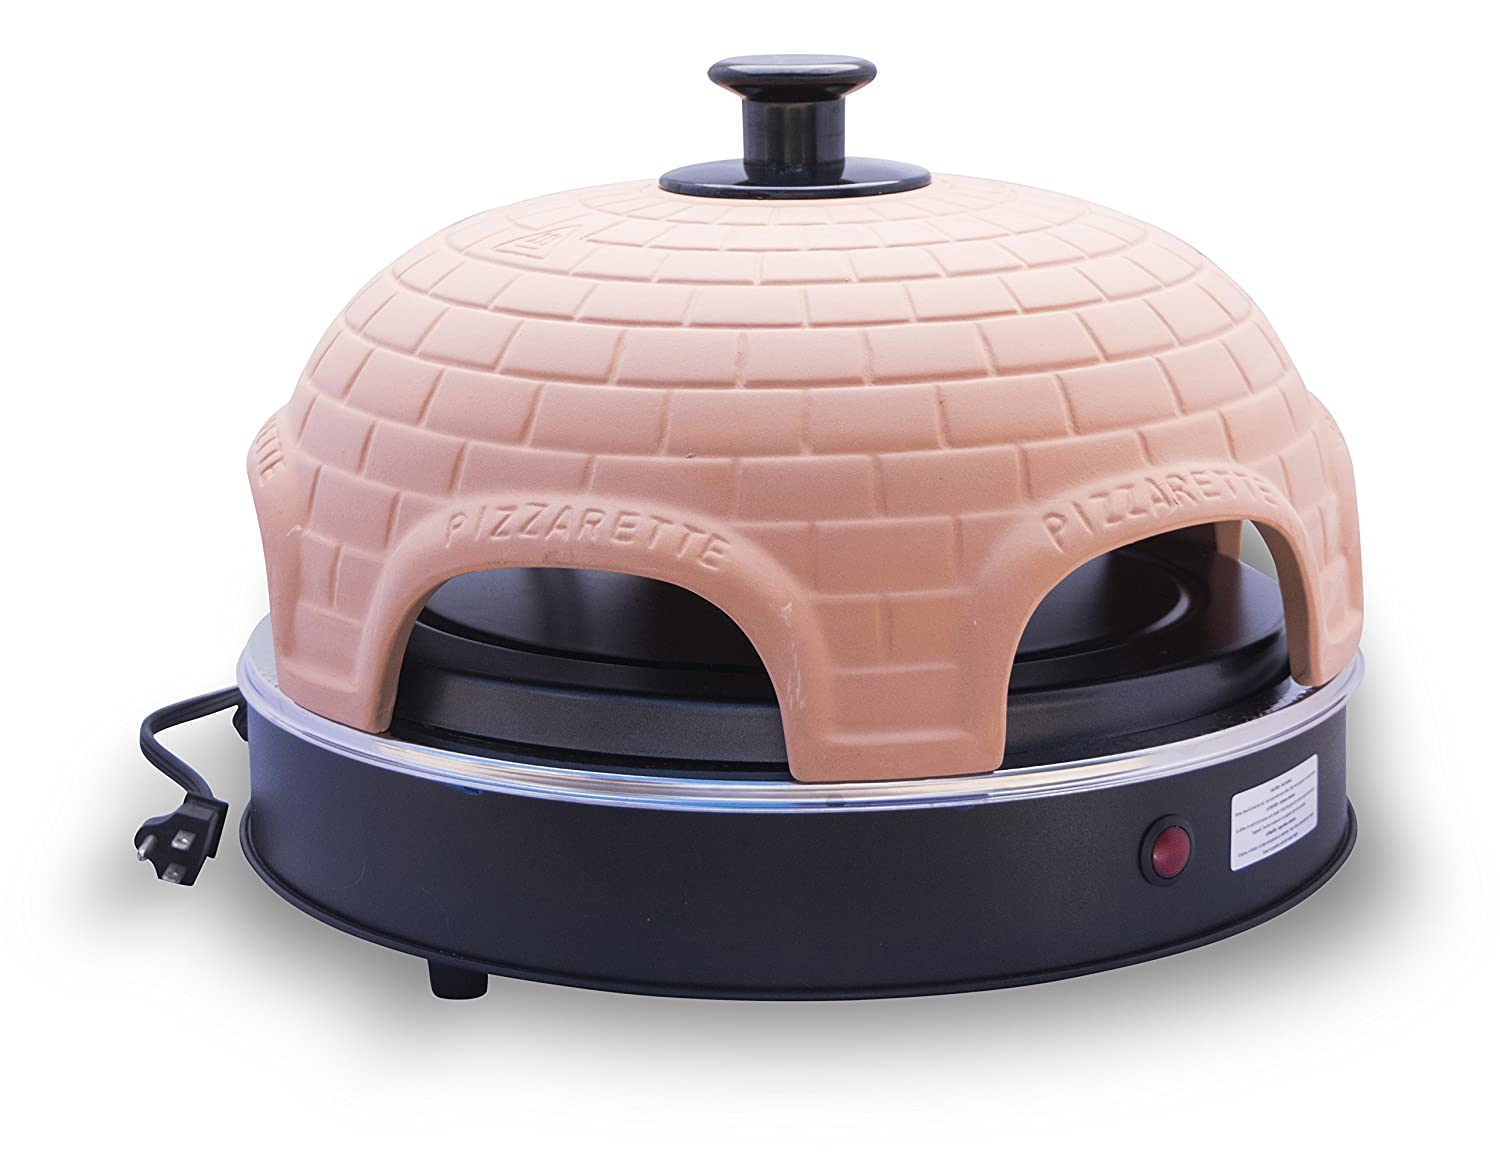 Pizzarette The World s Funnest Pizza Oven 6 Person Model – Countertop Pizza Oven Europe s Best-Selling Tabletop Mini Pizza Oven Now Available In The USA Dual Heating Elements